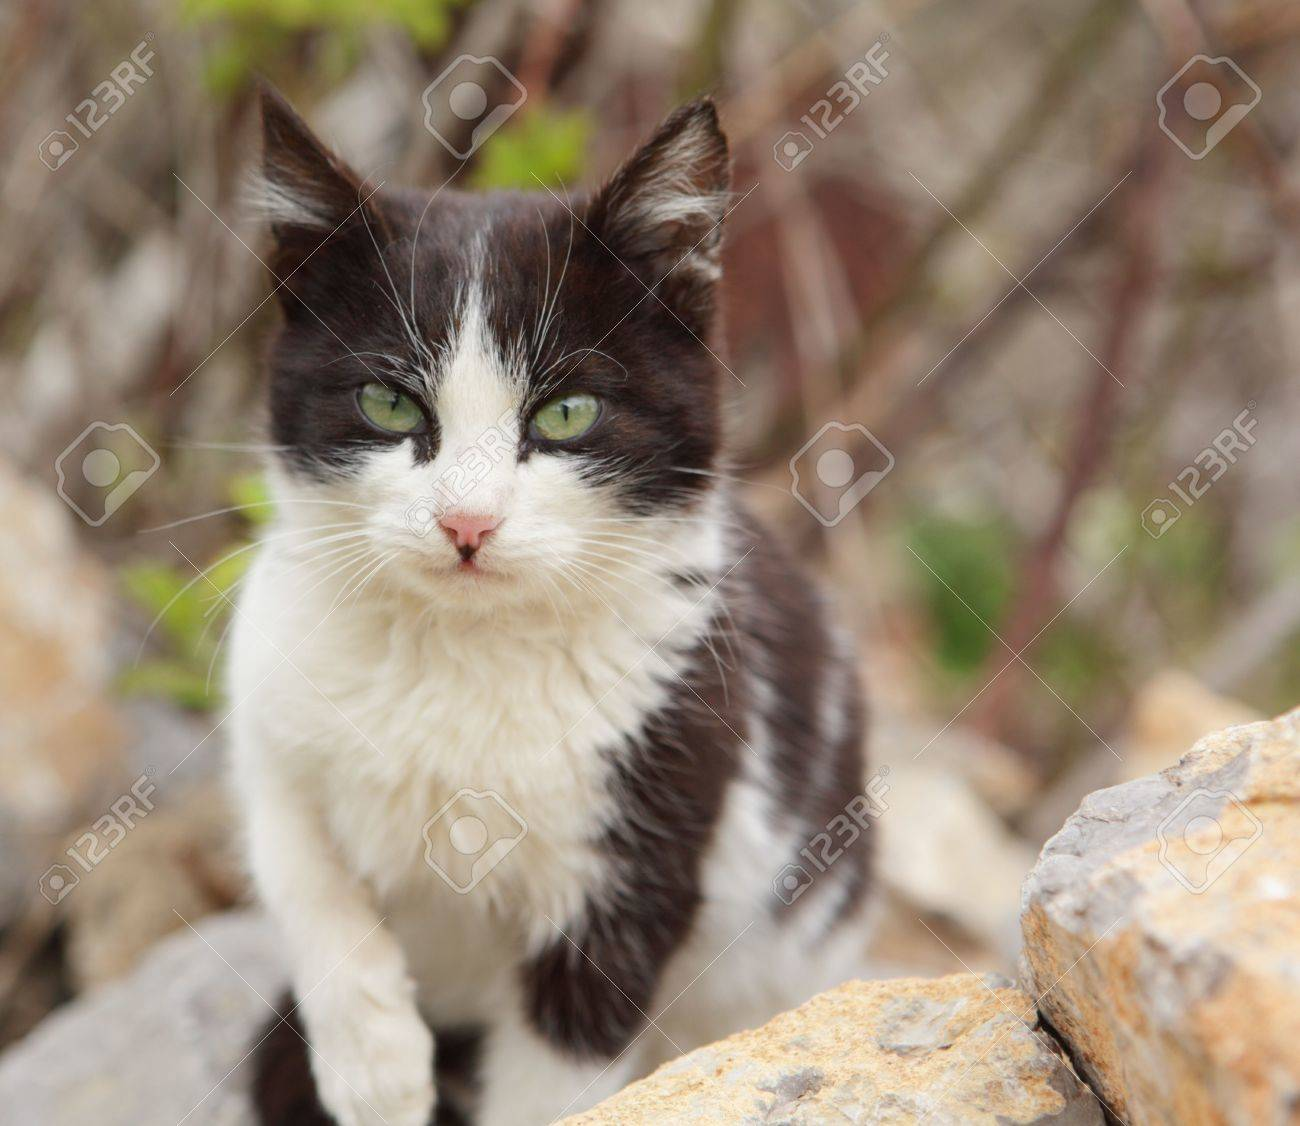 portrait of small pussy cat stock photo, picture and royalty free